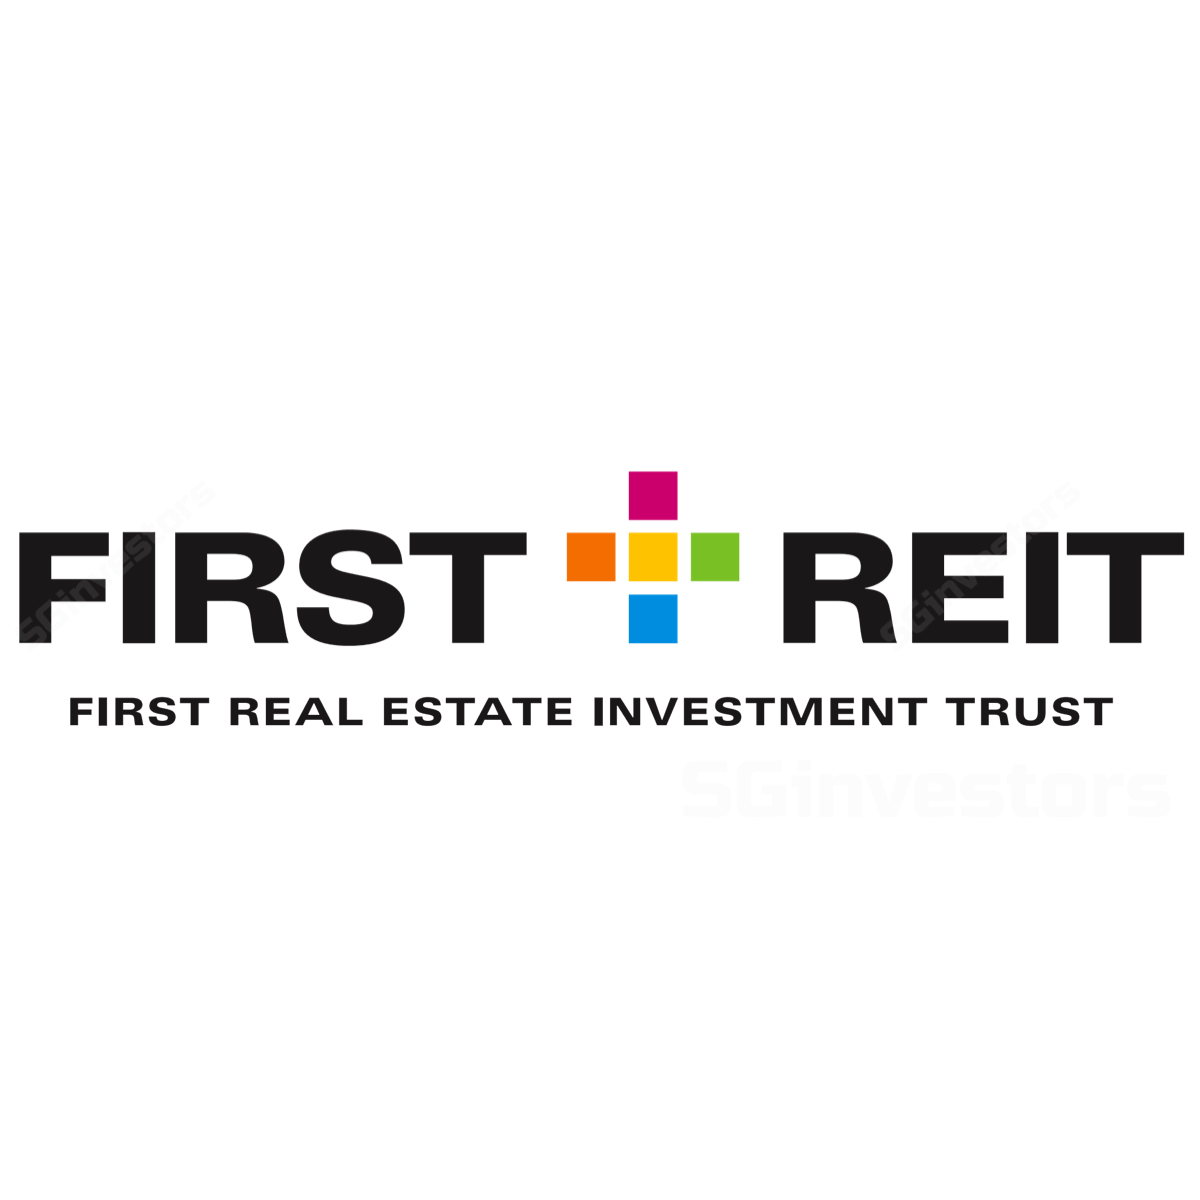 First REIT - Phillip Securities 2017-01-19: Strong sponsor acquisition pipeline to look forward to